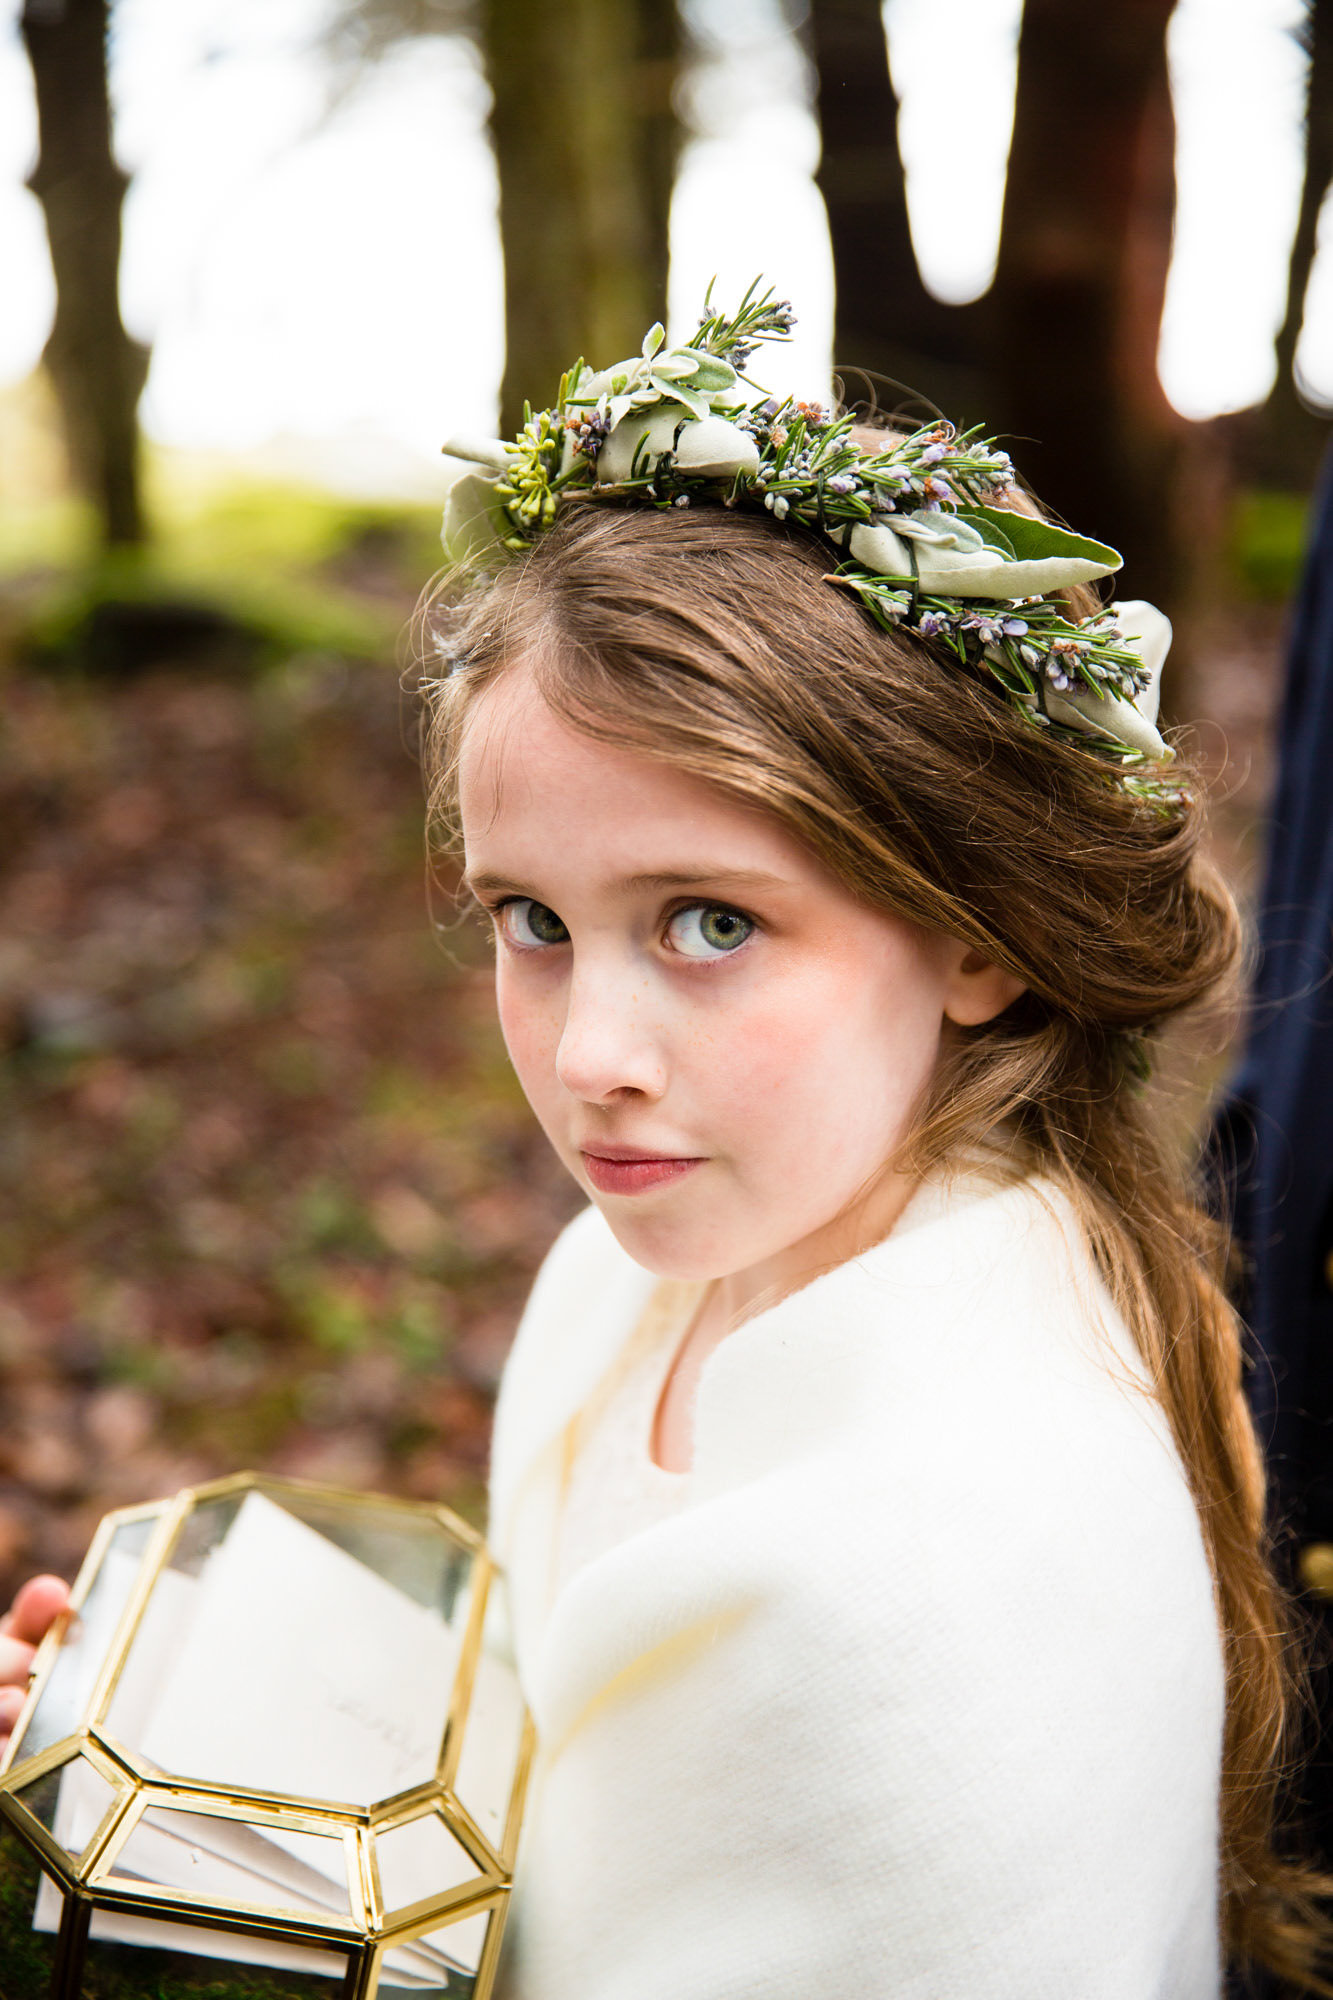 Green-eyed flower girl wearing floral crown - La Vie Photography